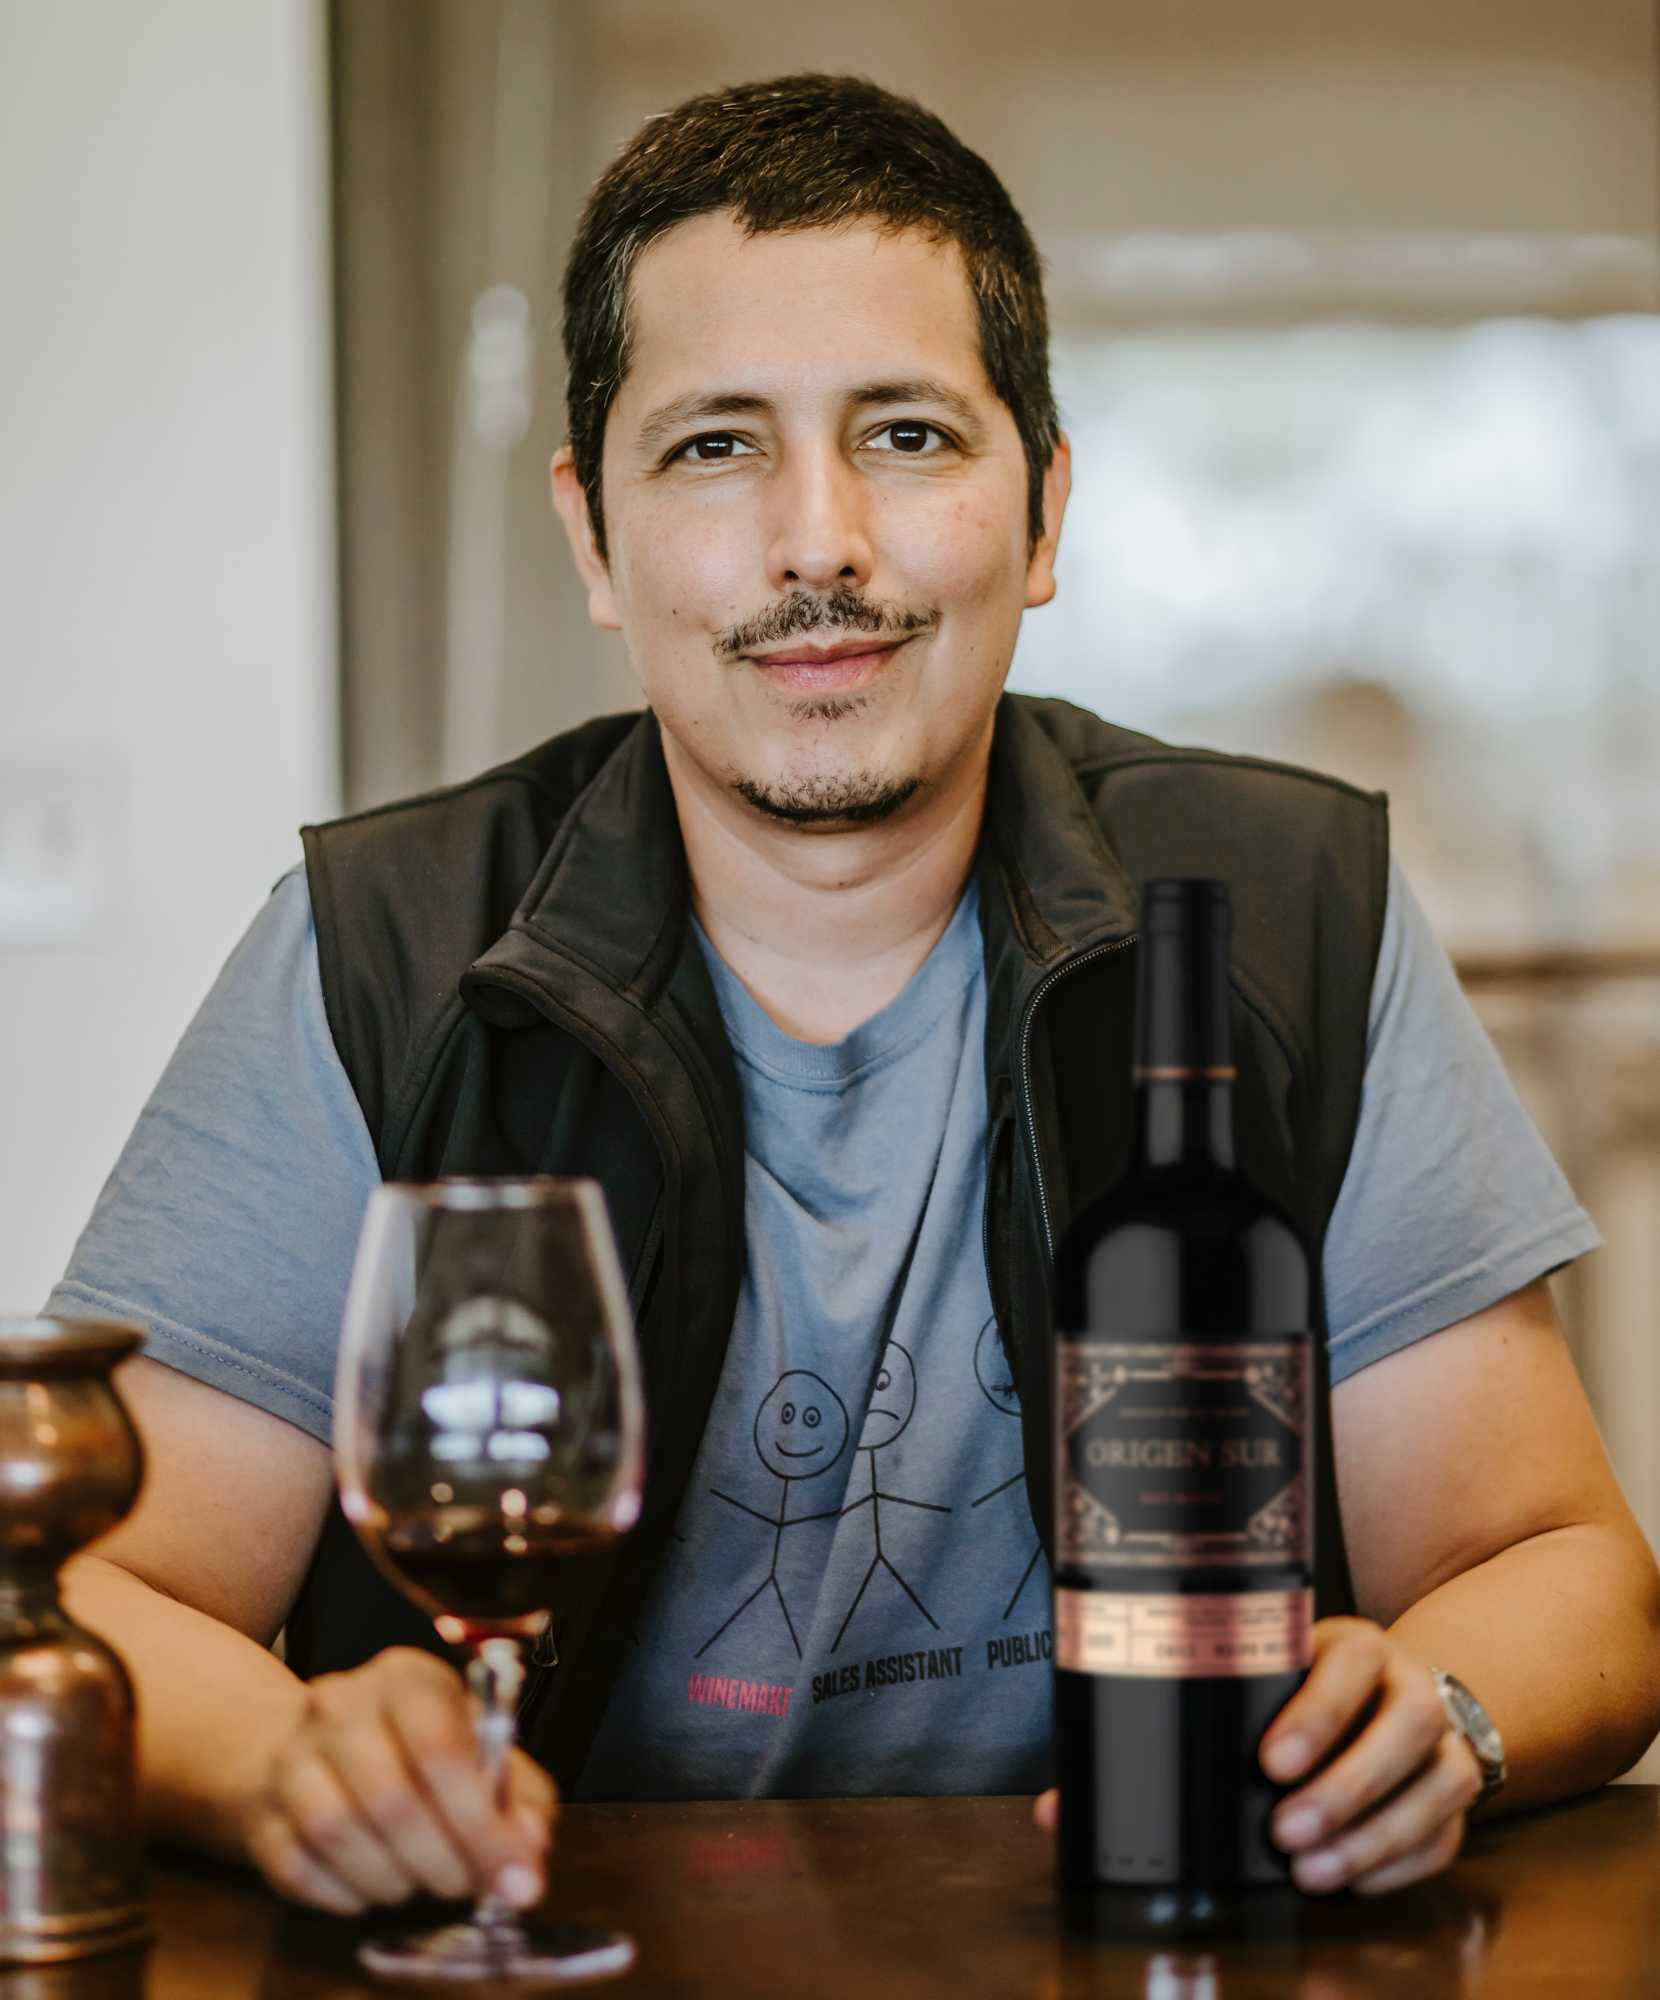 Martin Reyes Perfects His Red Blend with Coravin Screw Caps